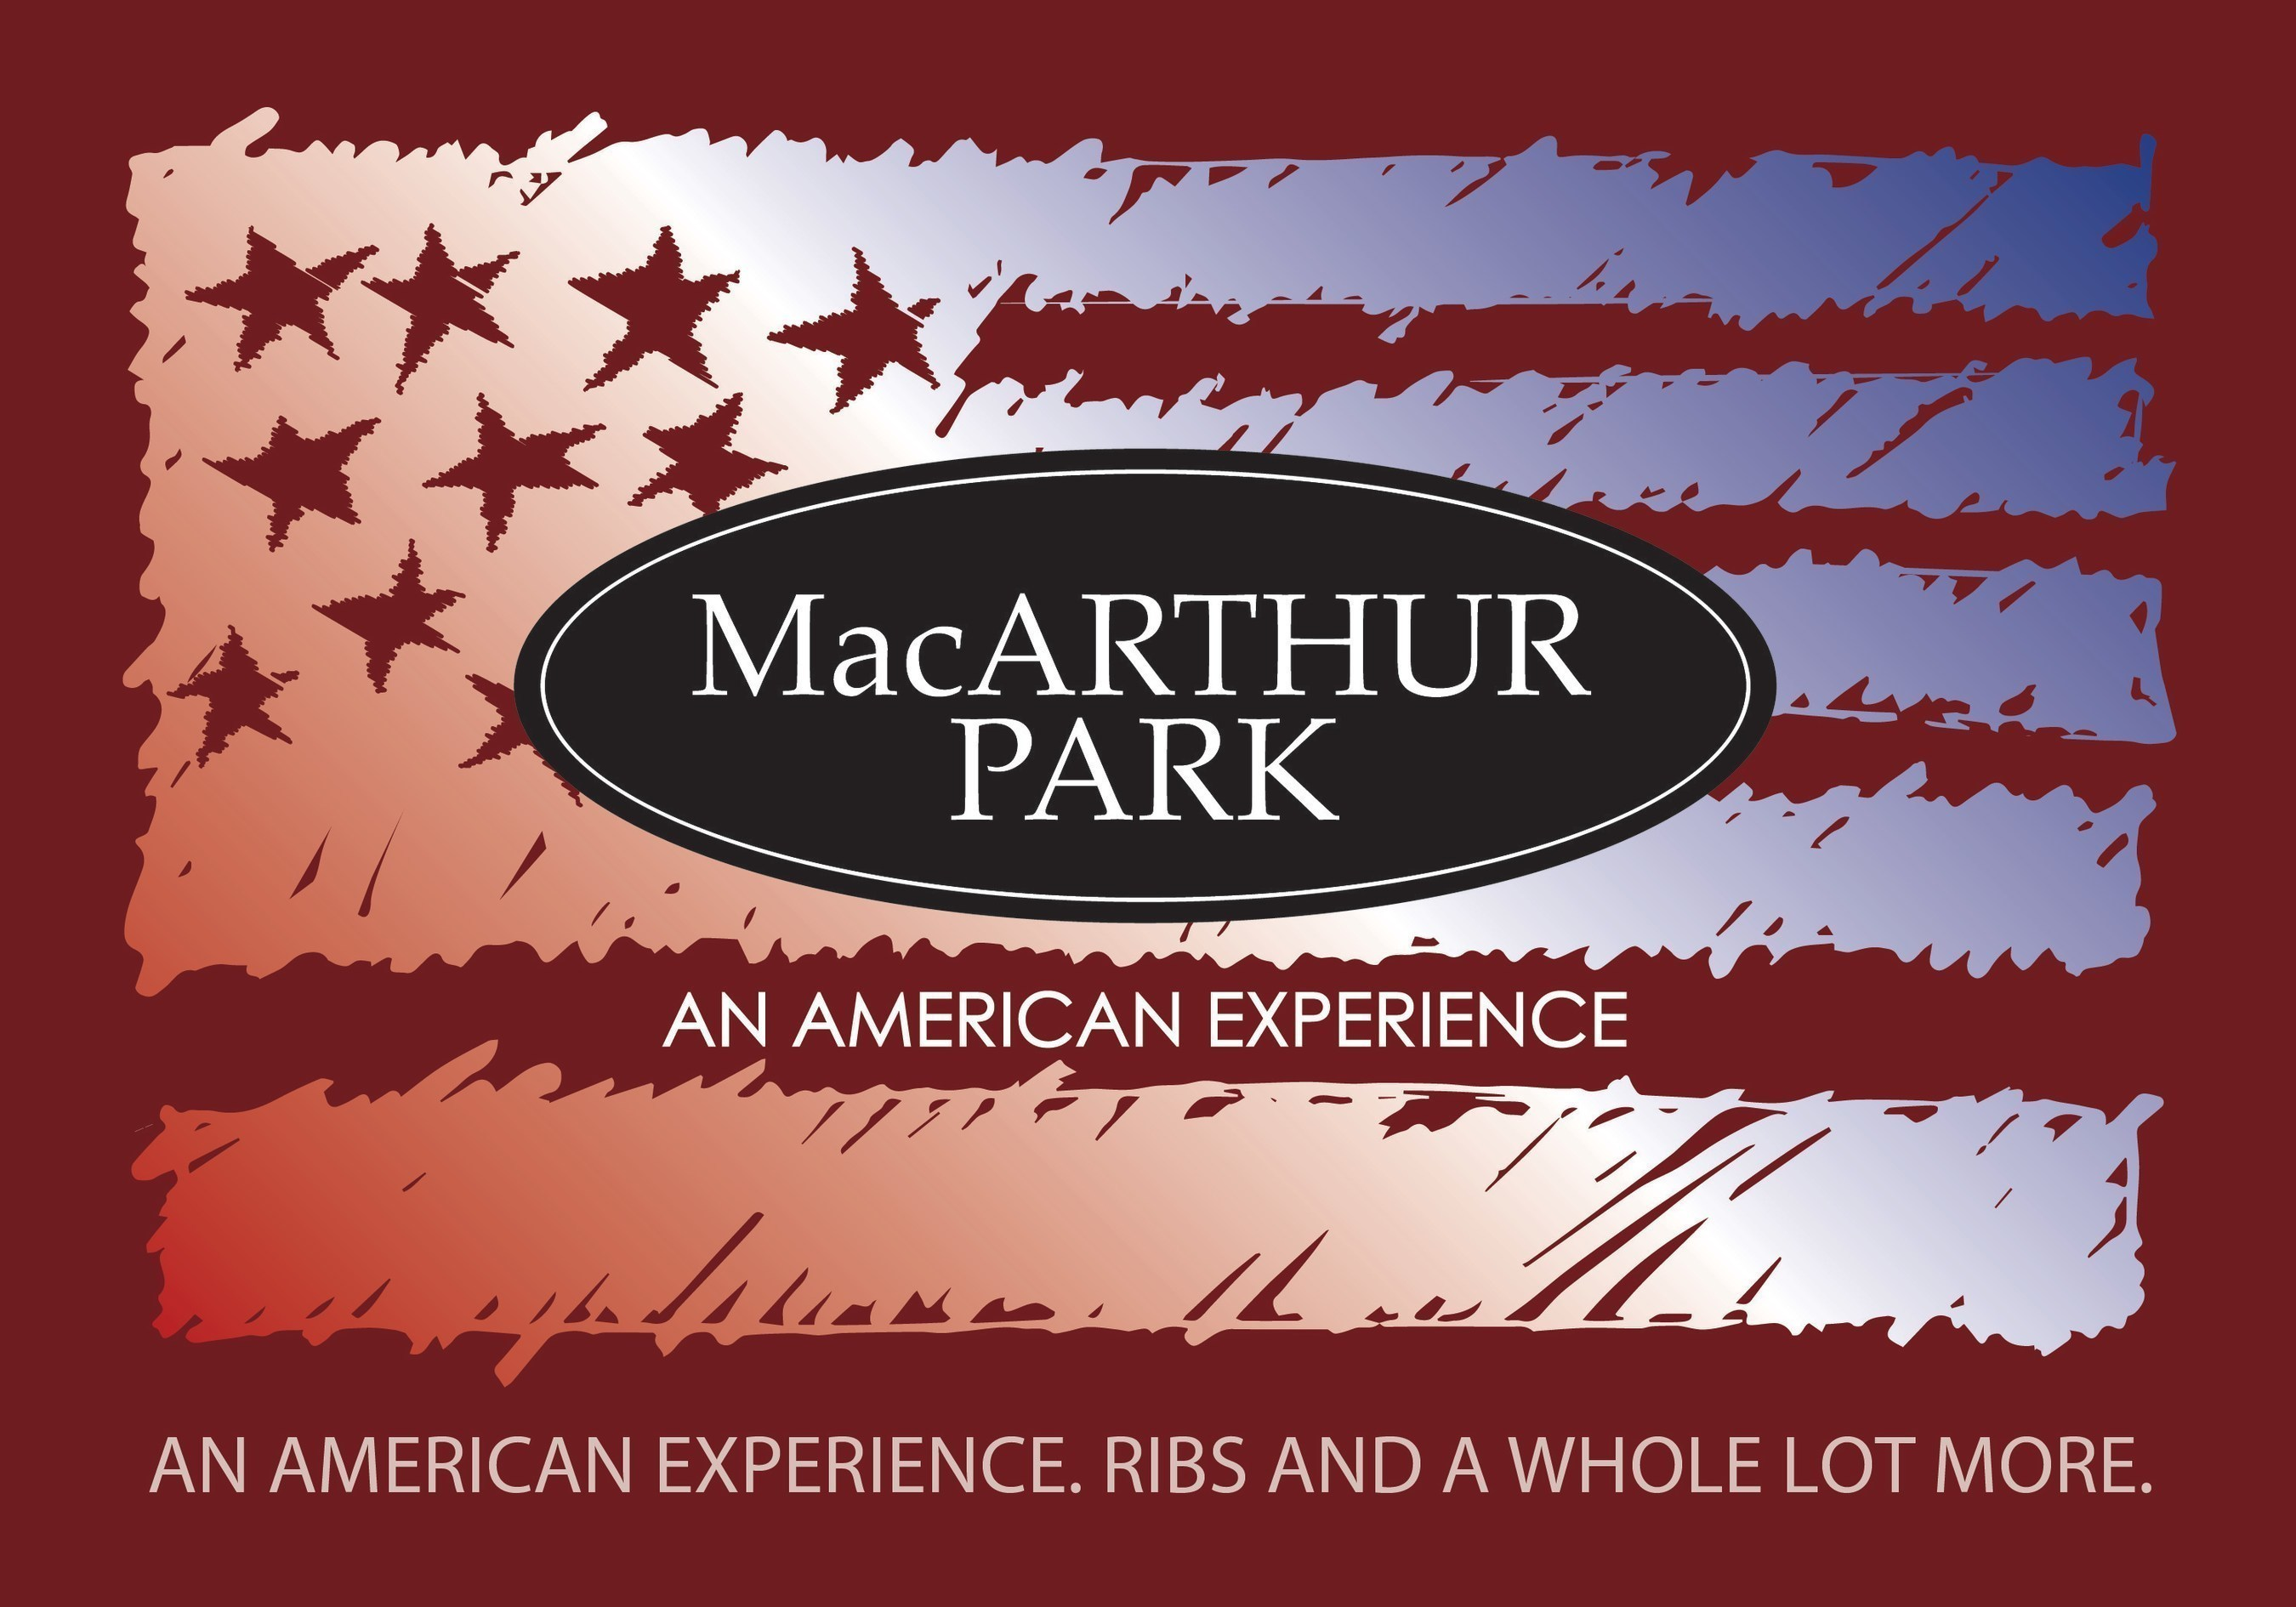 MacArthur Park Restaurant, named after a Jimmy Webb song, has been a neighborhood favorite in Palo Alto since ...